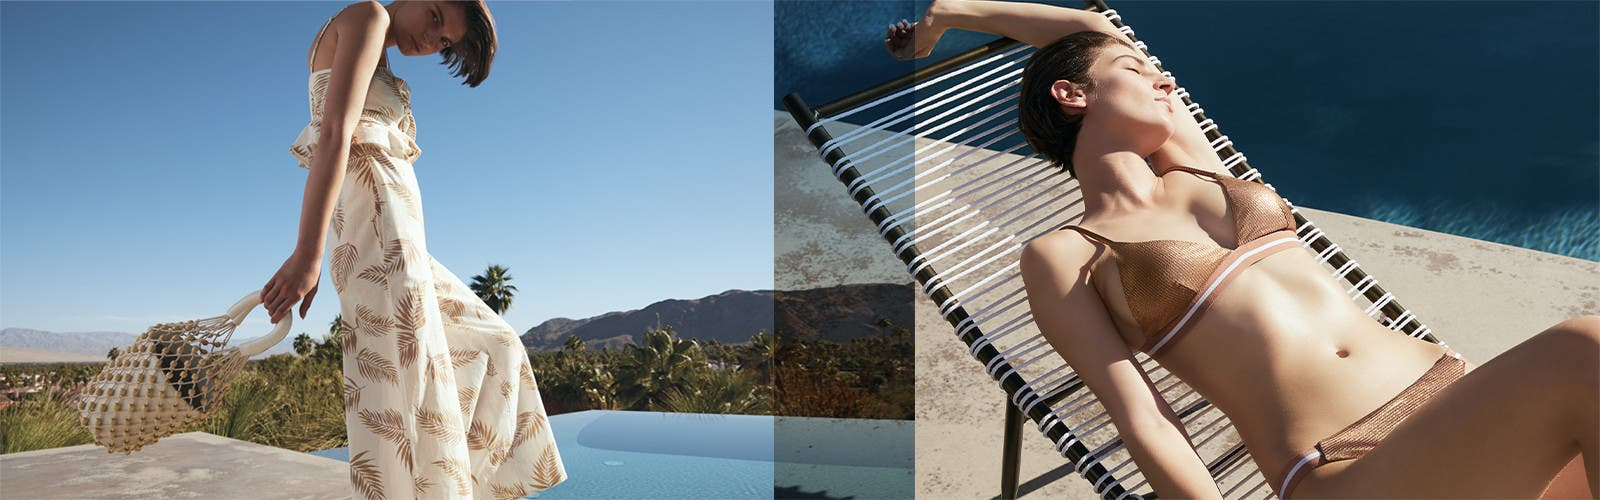 Get ready to get away: women's vacation clothing, shoes and accessories.